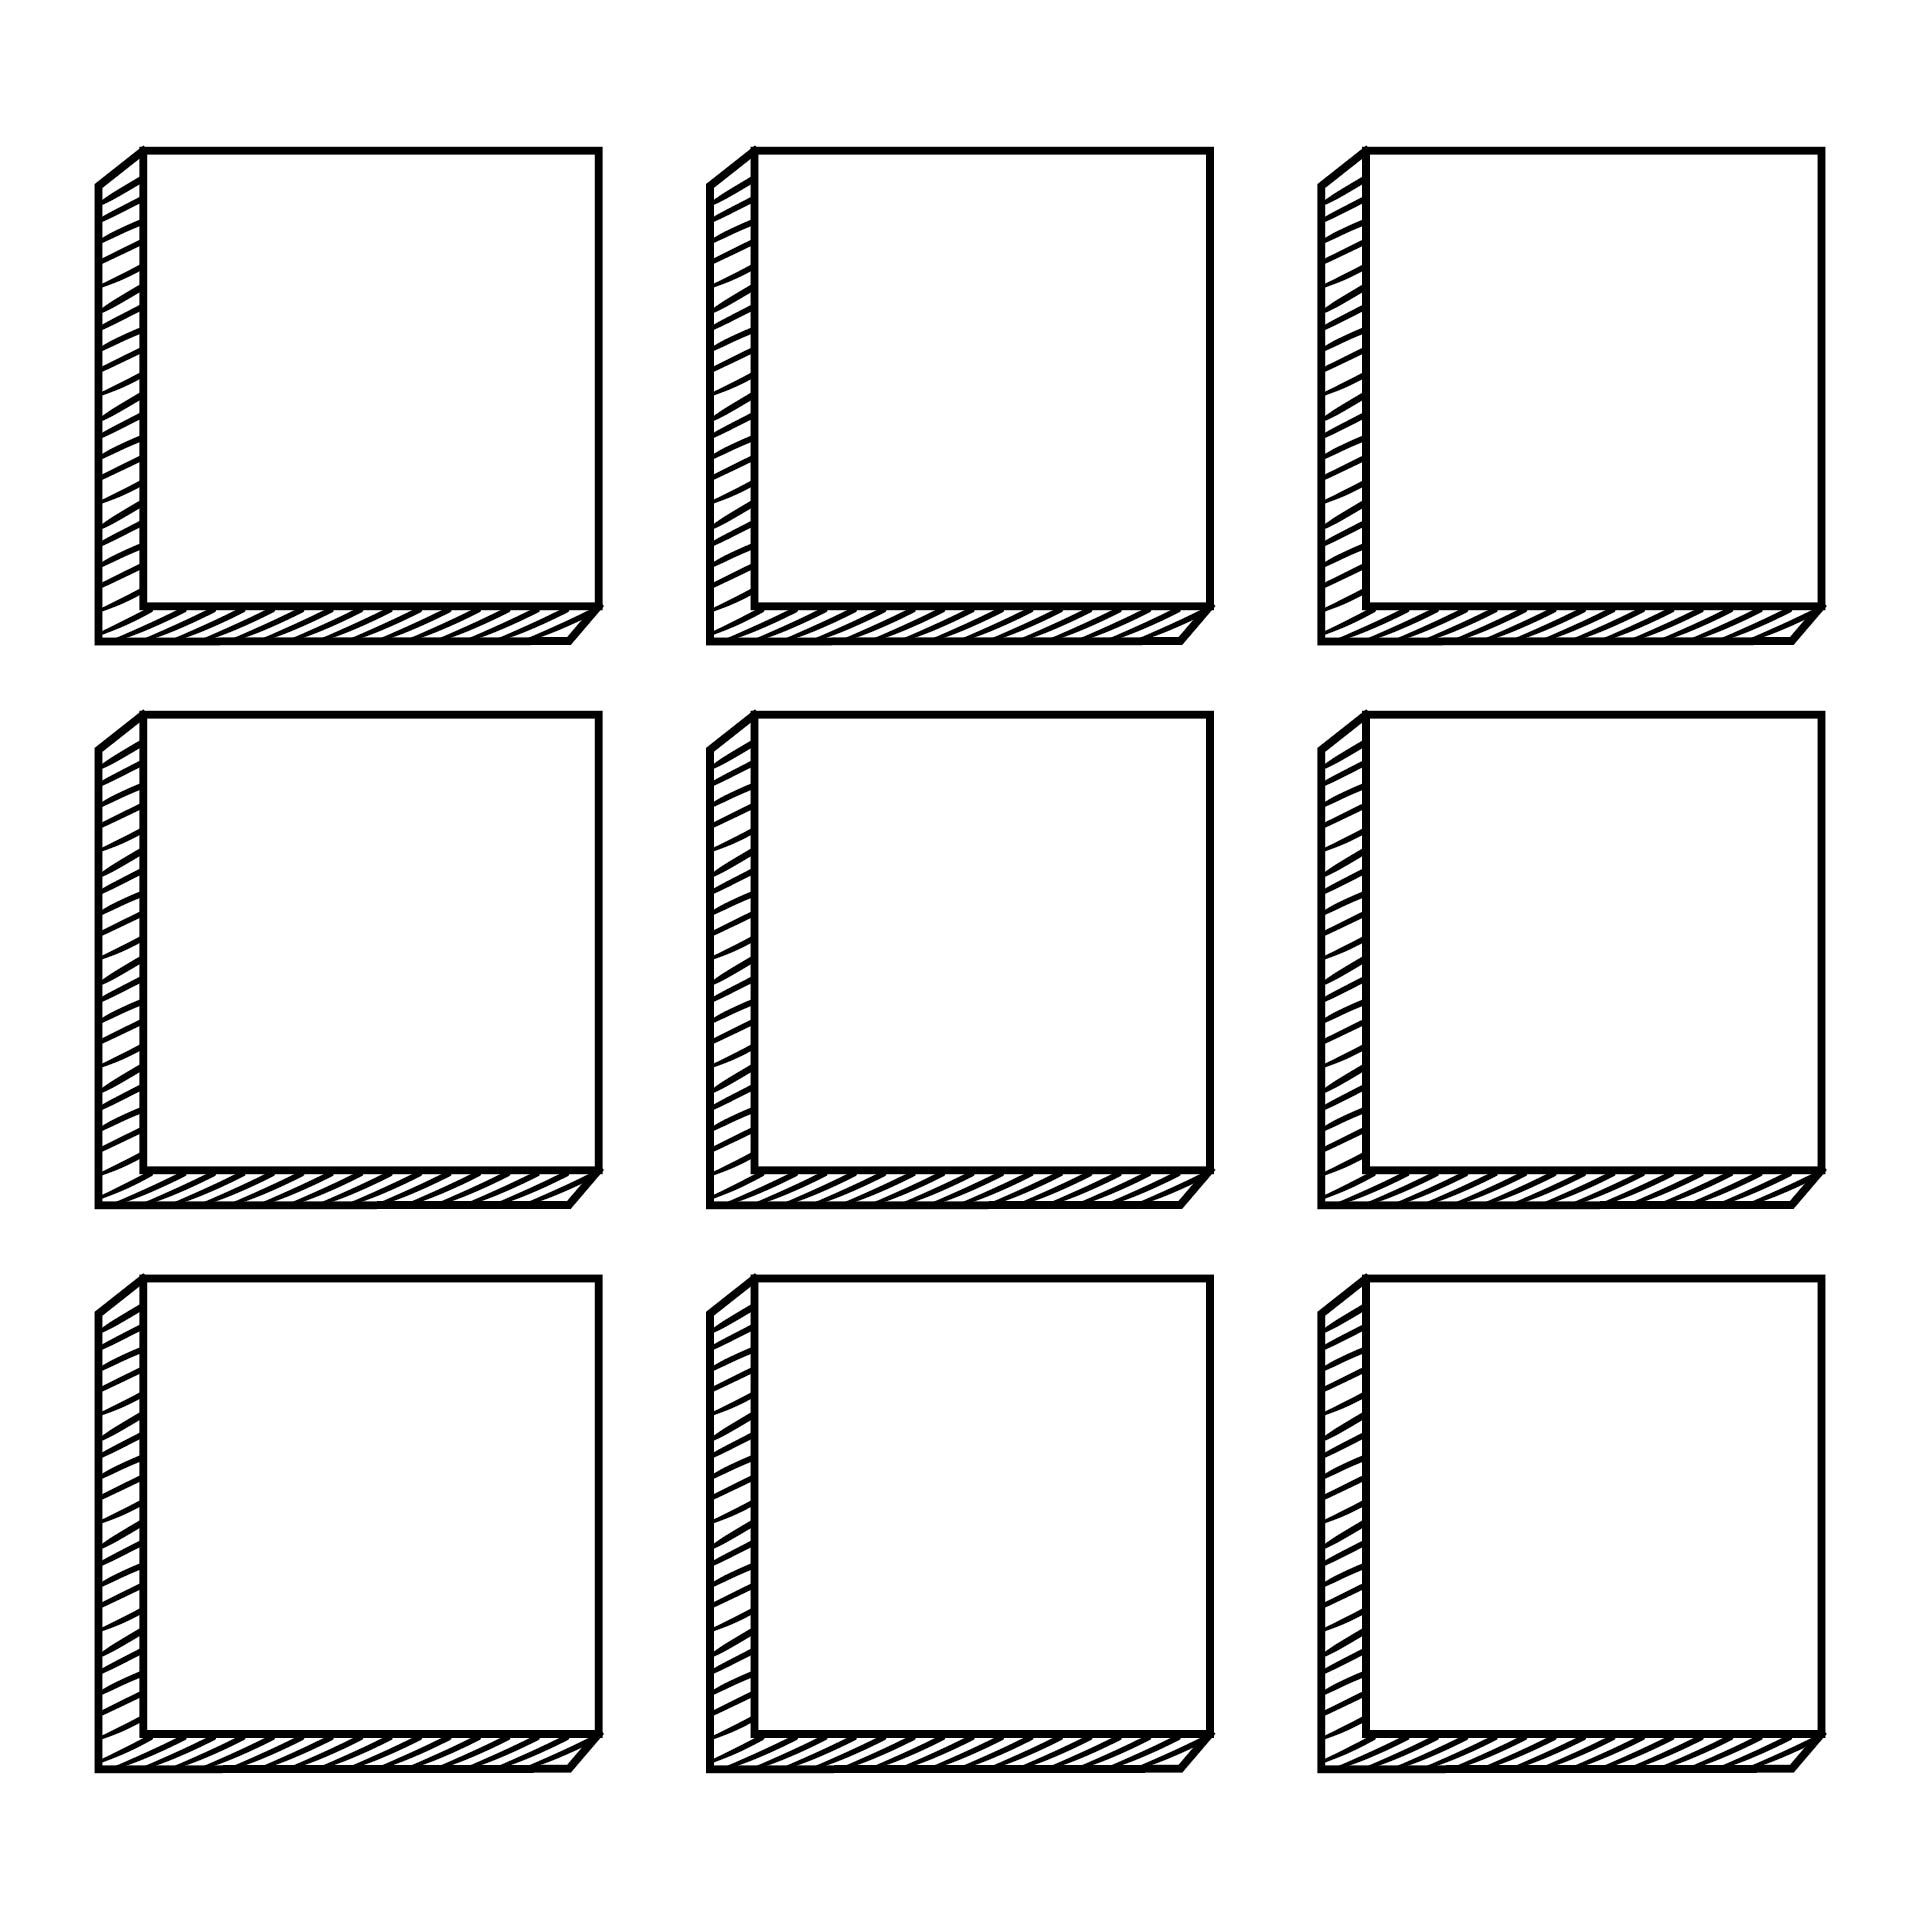 6 Images of Square Templates Printable Free